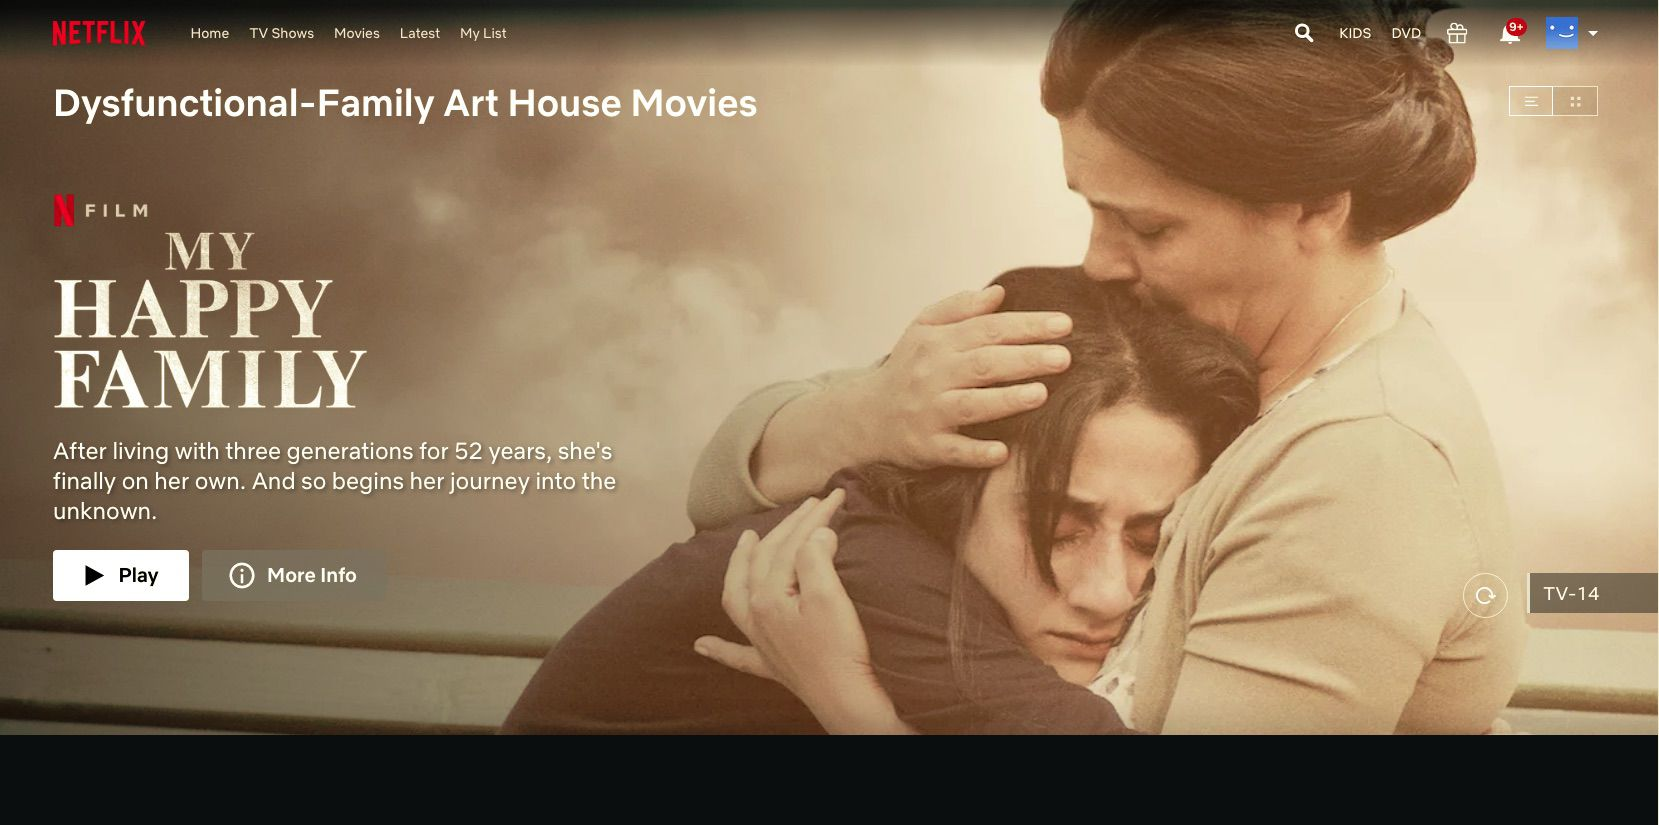 My Happy Family movie in Netflix hidden category Dysfunctional Family Art House Movies